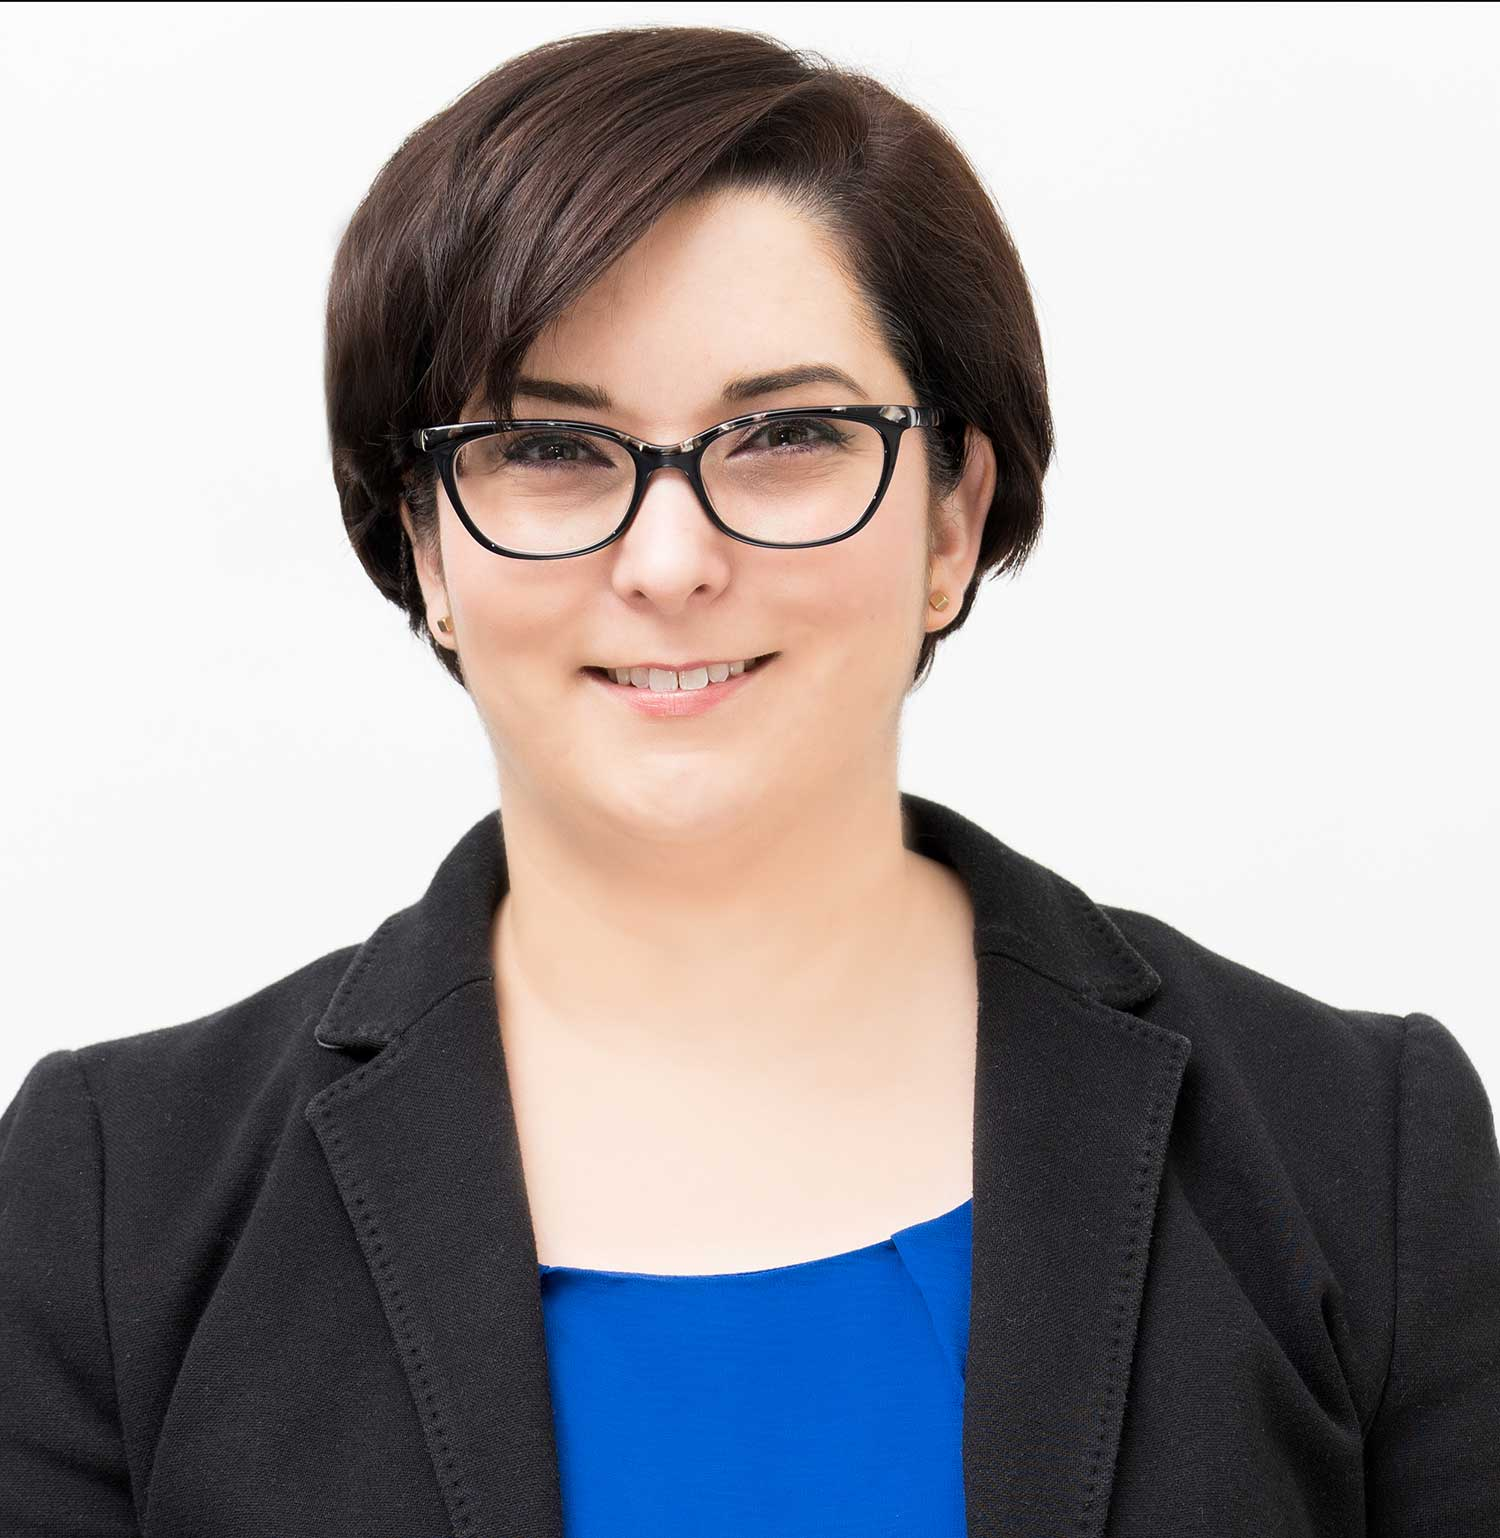 smiling woman with short brown hair and glasses wearing black blazer and blue shirt